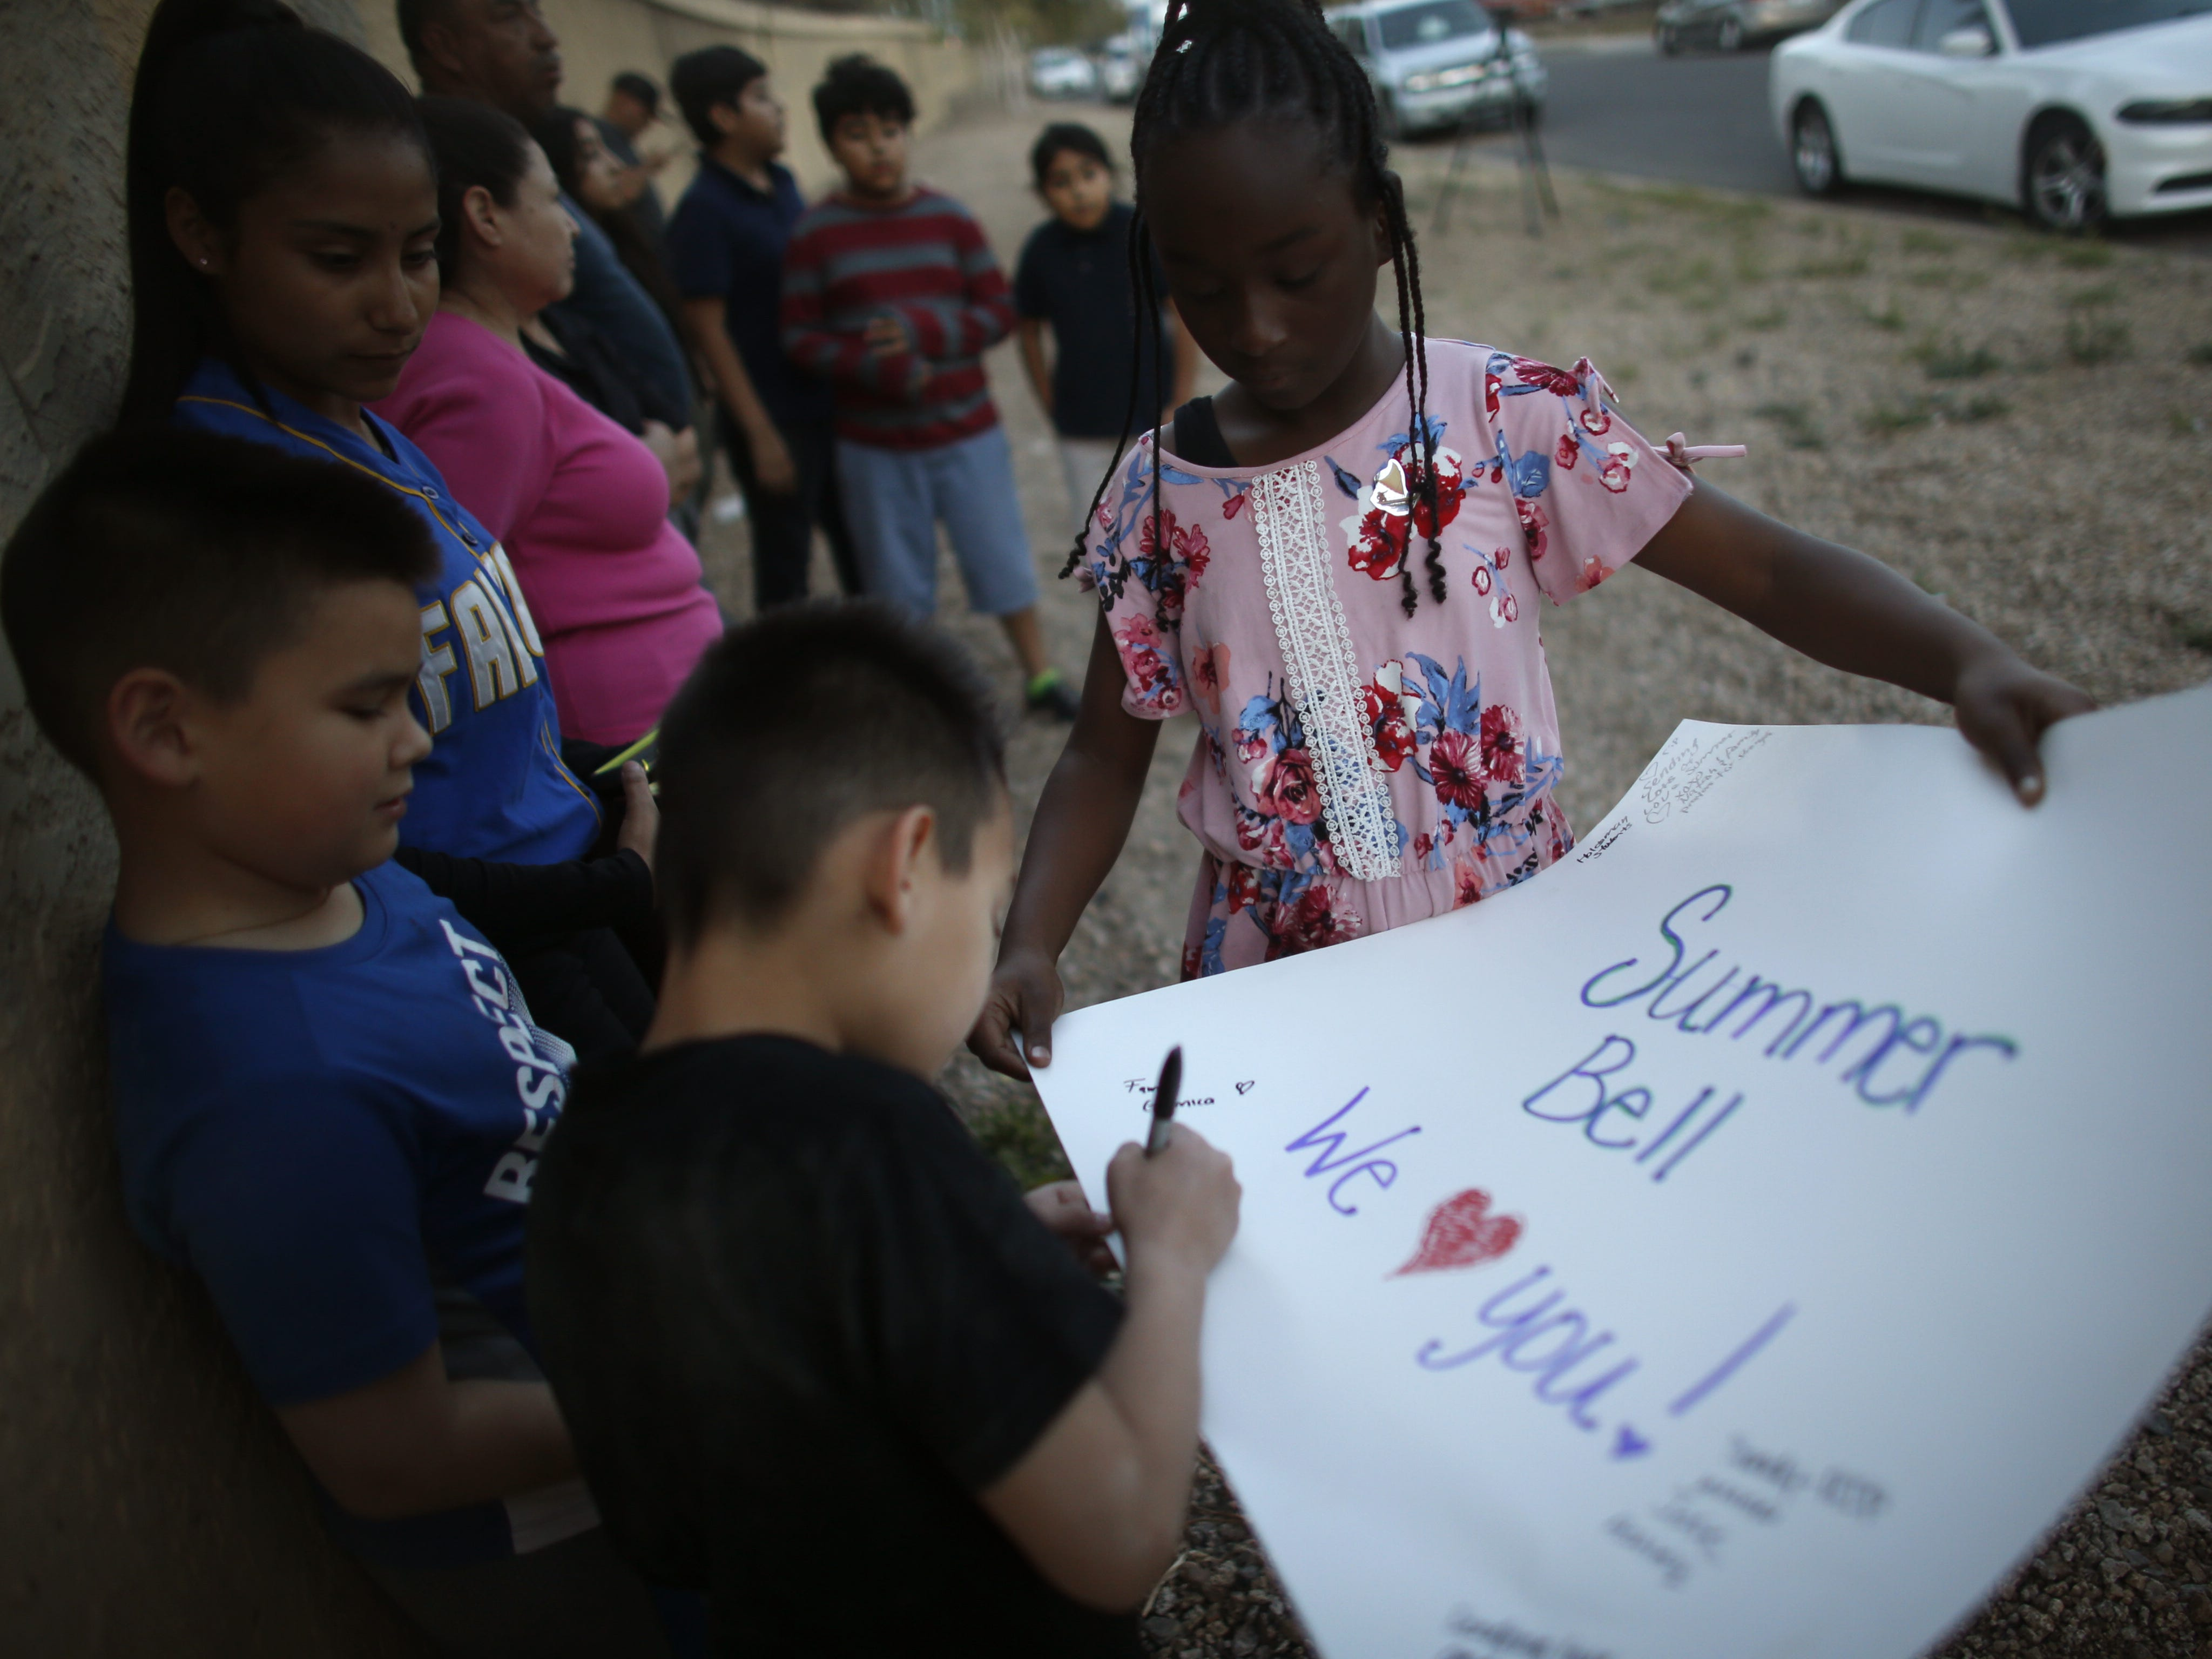 """Narija Anthony, 8, has children sign a poster saying """"Summer Bell We Heart You"""" at a vigil for Summer Bell Brown on April 5, 2019, outside her home where she was shot and killed in Phoenix."""